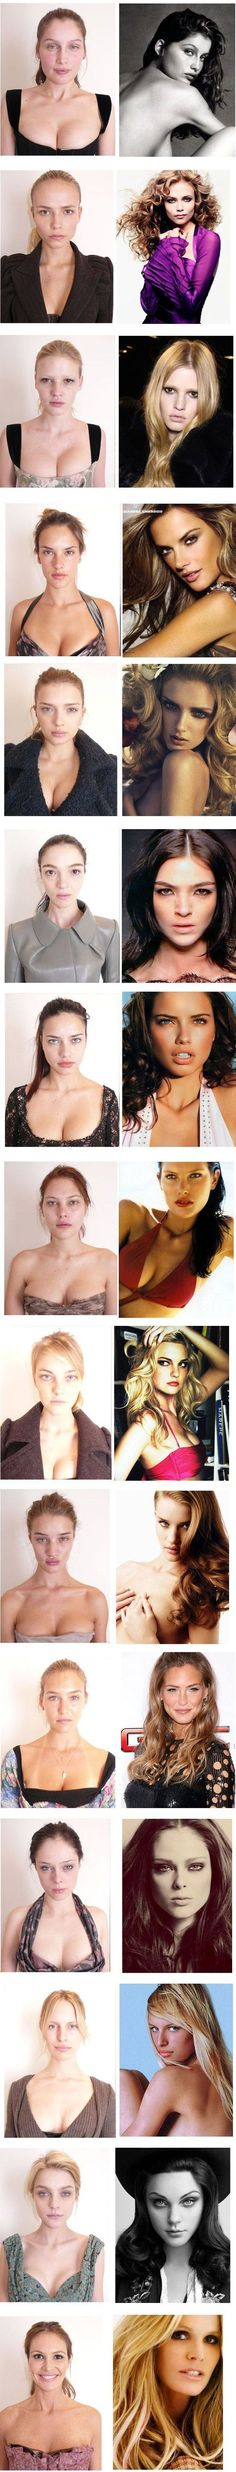 Supermodels without makeup or photoshop, the thing is, they're still really pretty, they just look more normal.